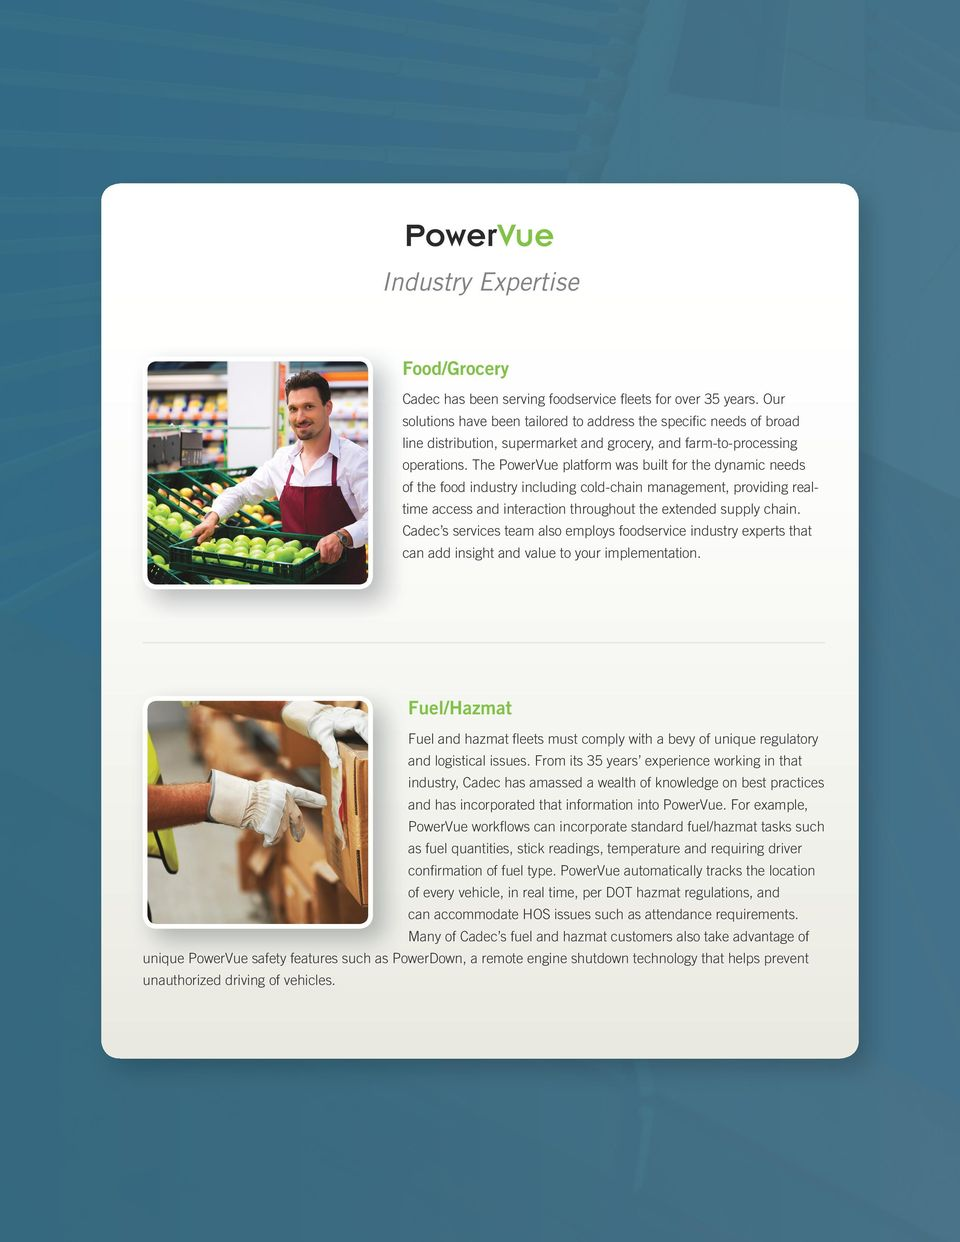 The PowerVue platform was built for the dynamic needs of the food industry including cold-chain management, providing realtime access and interaction throughout the extended supply chain.